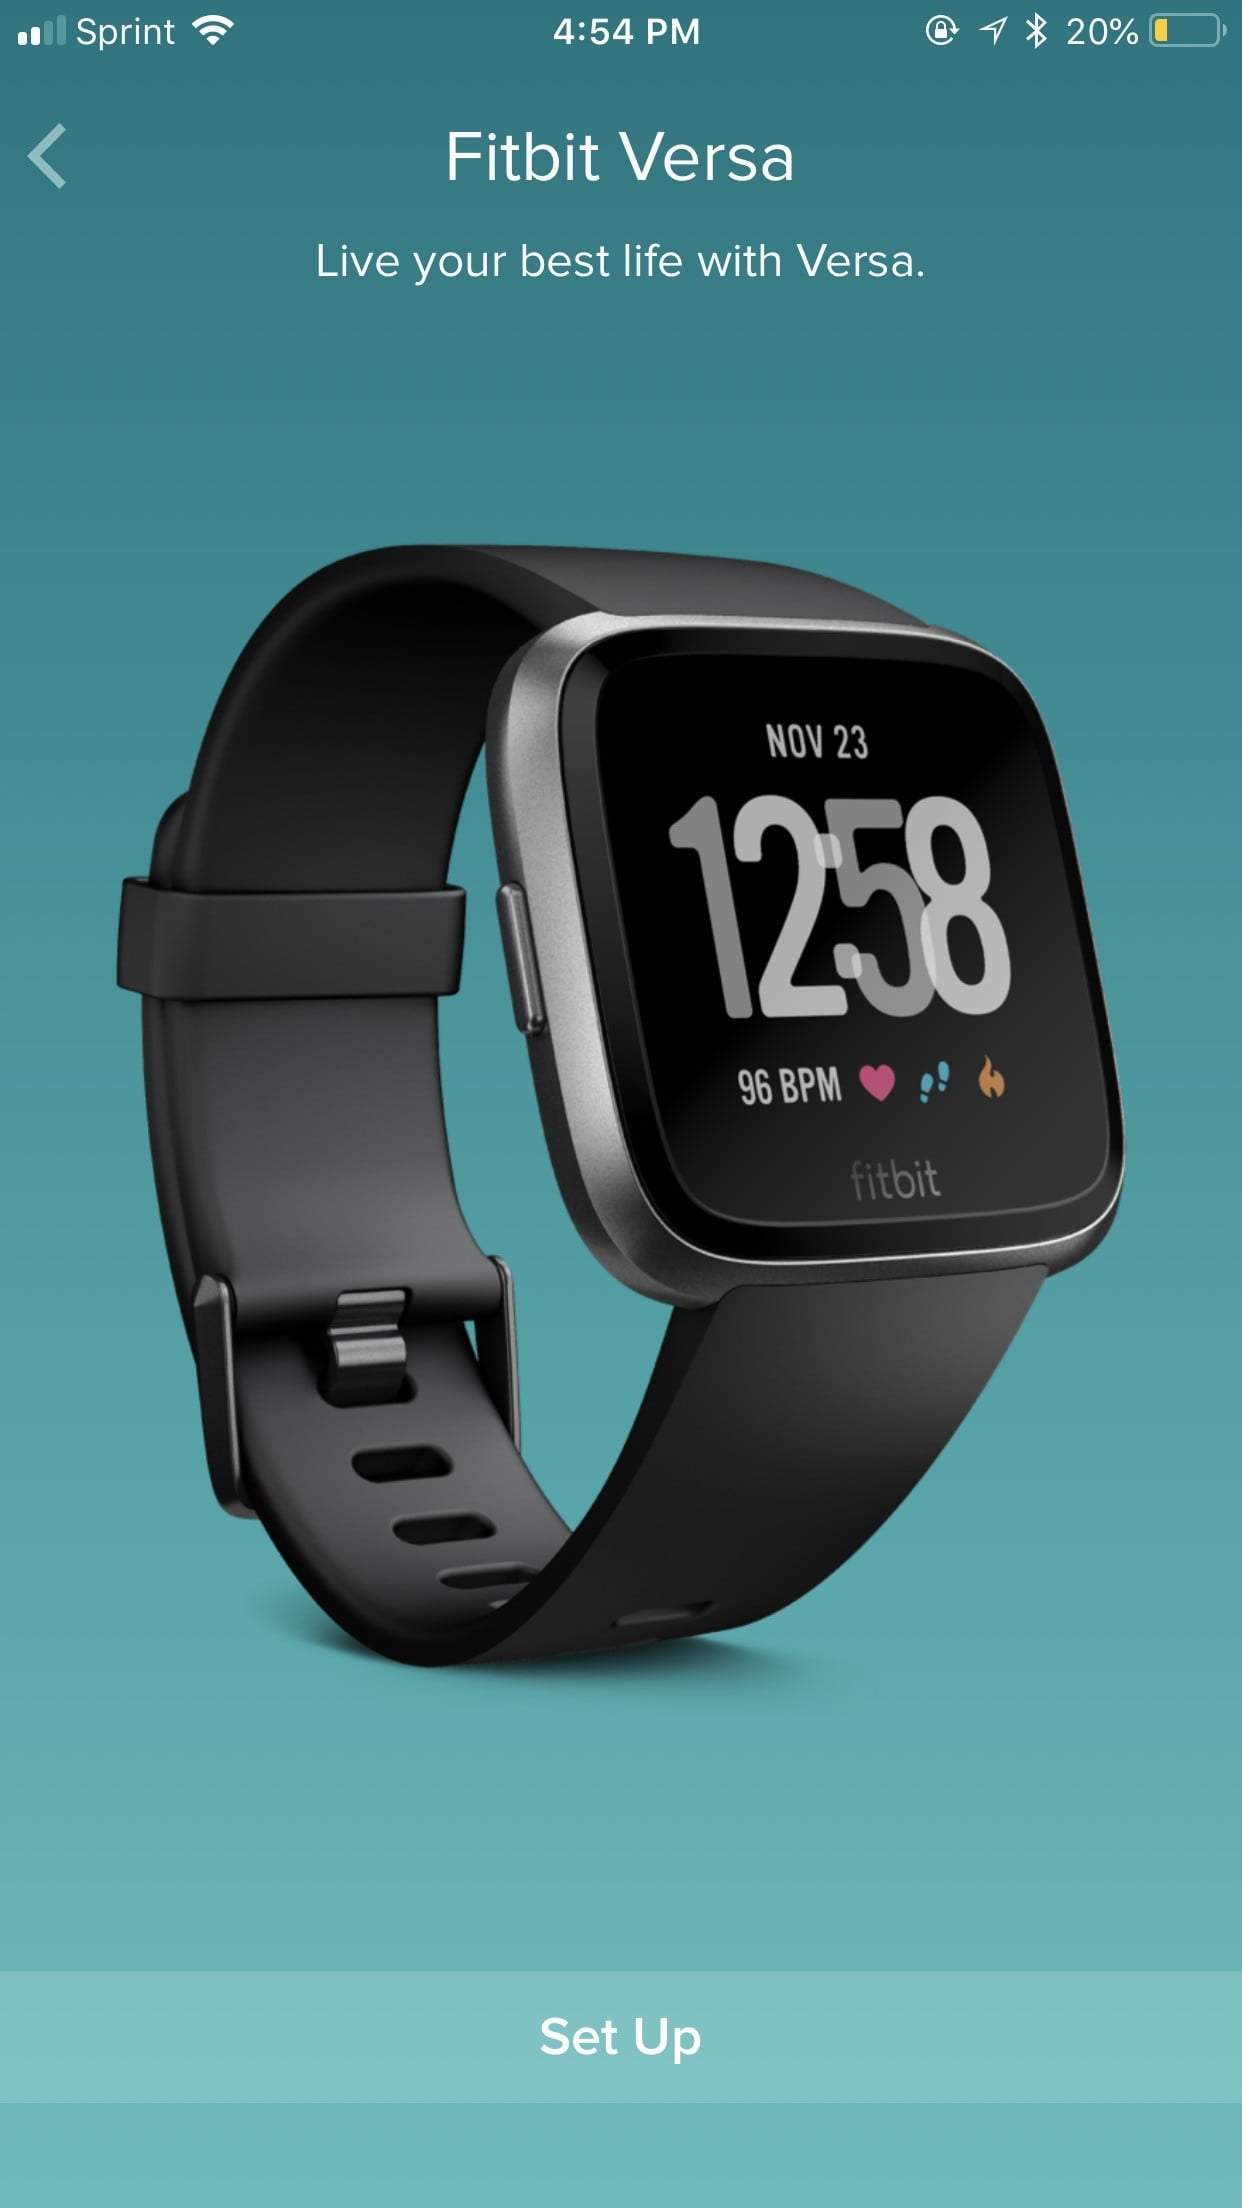 fitbit operating instructions